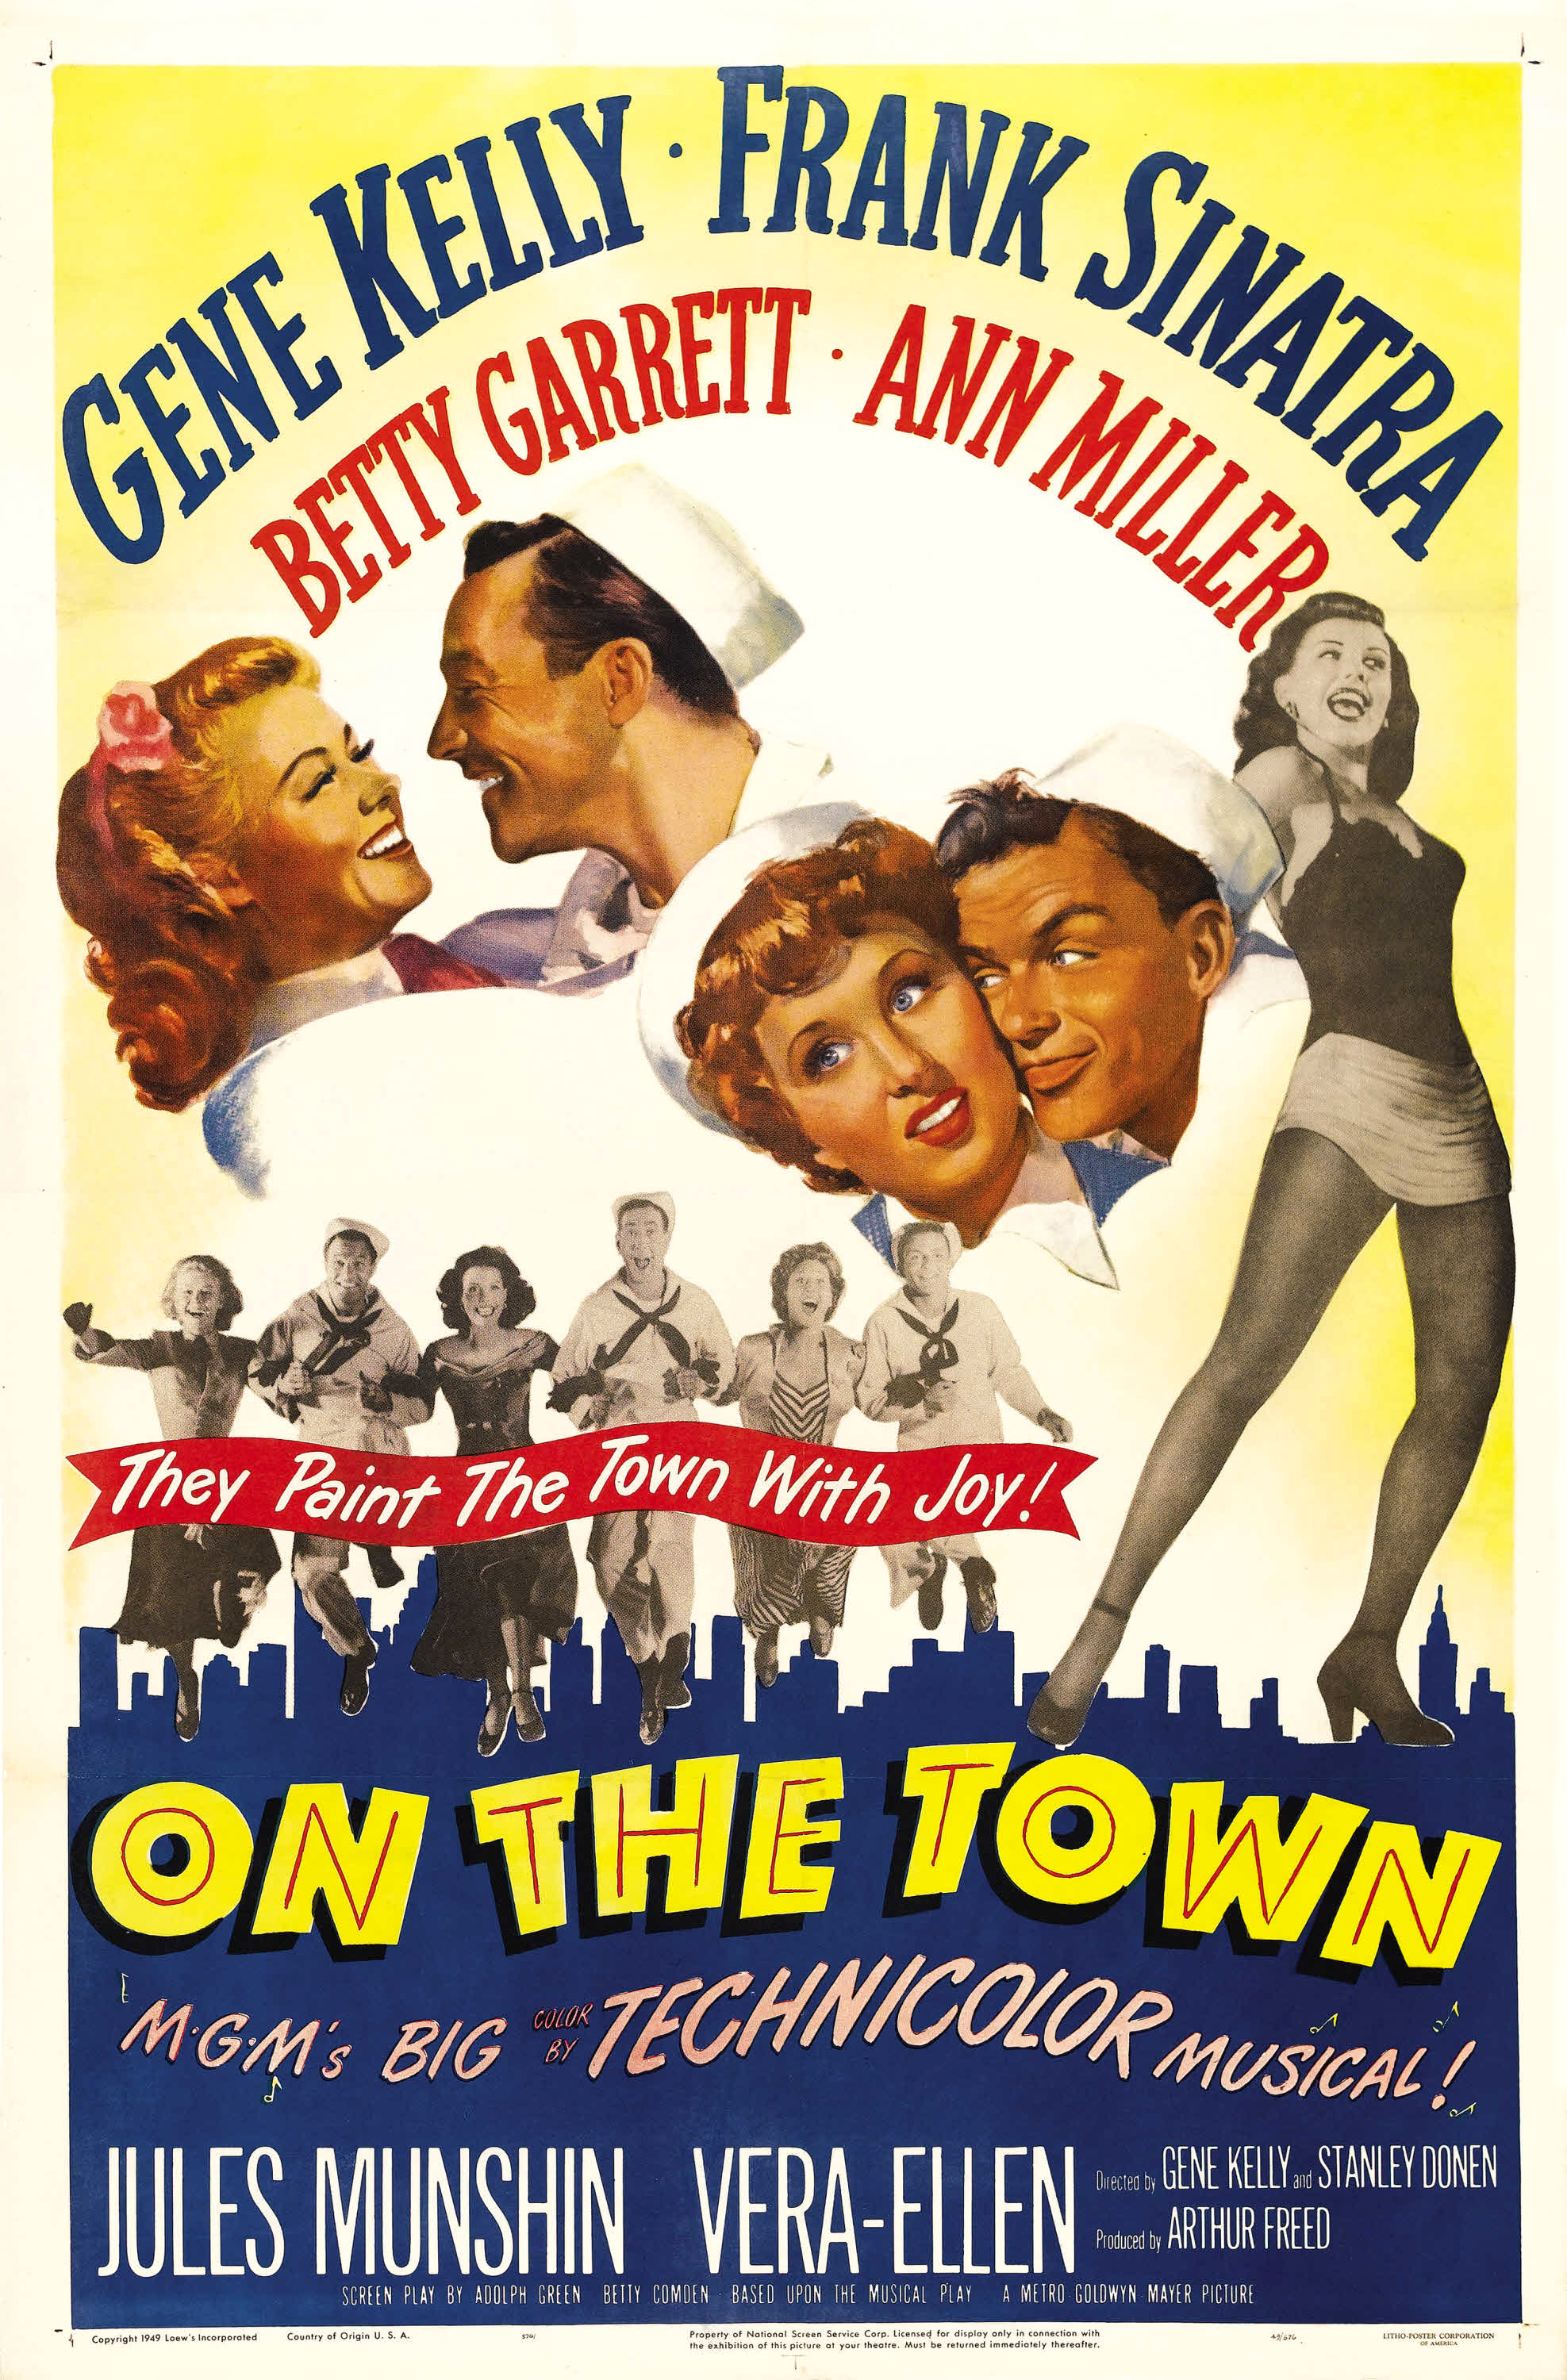 poster_on_the_town_01.jpg